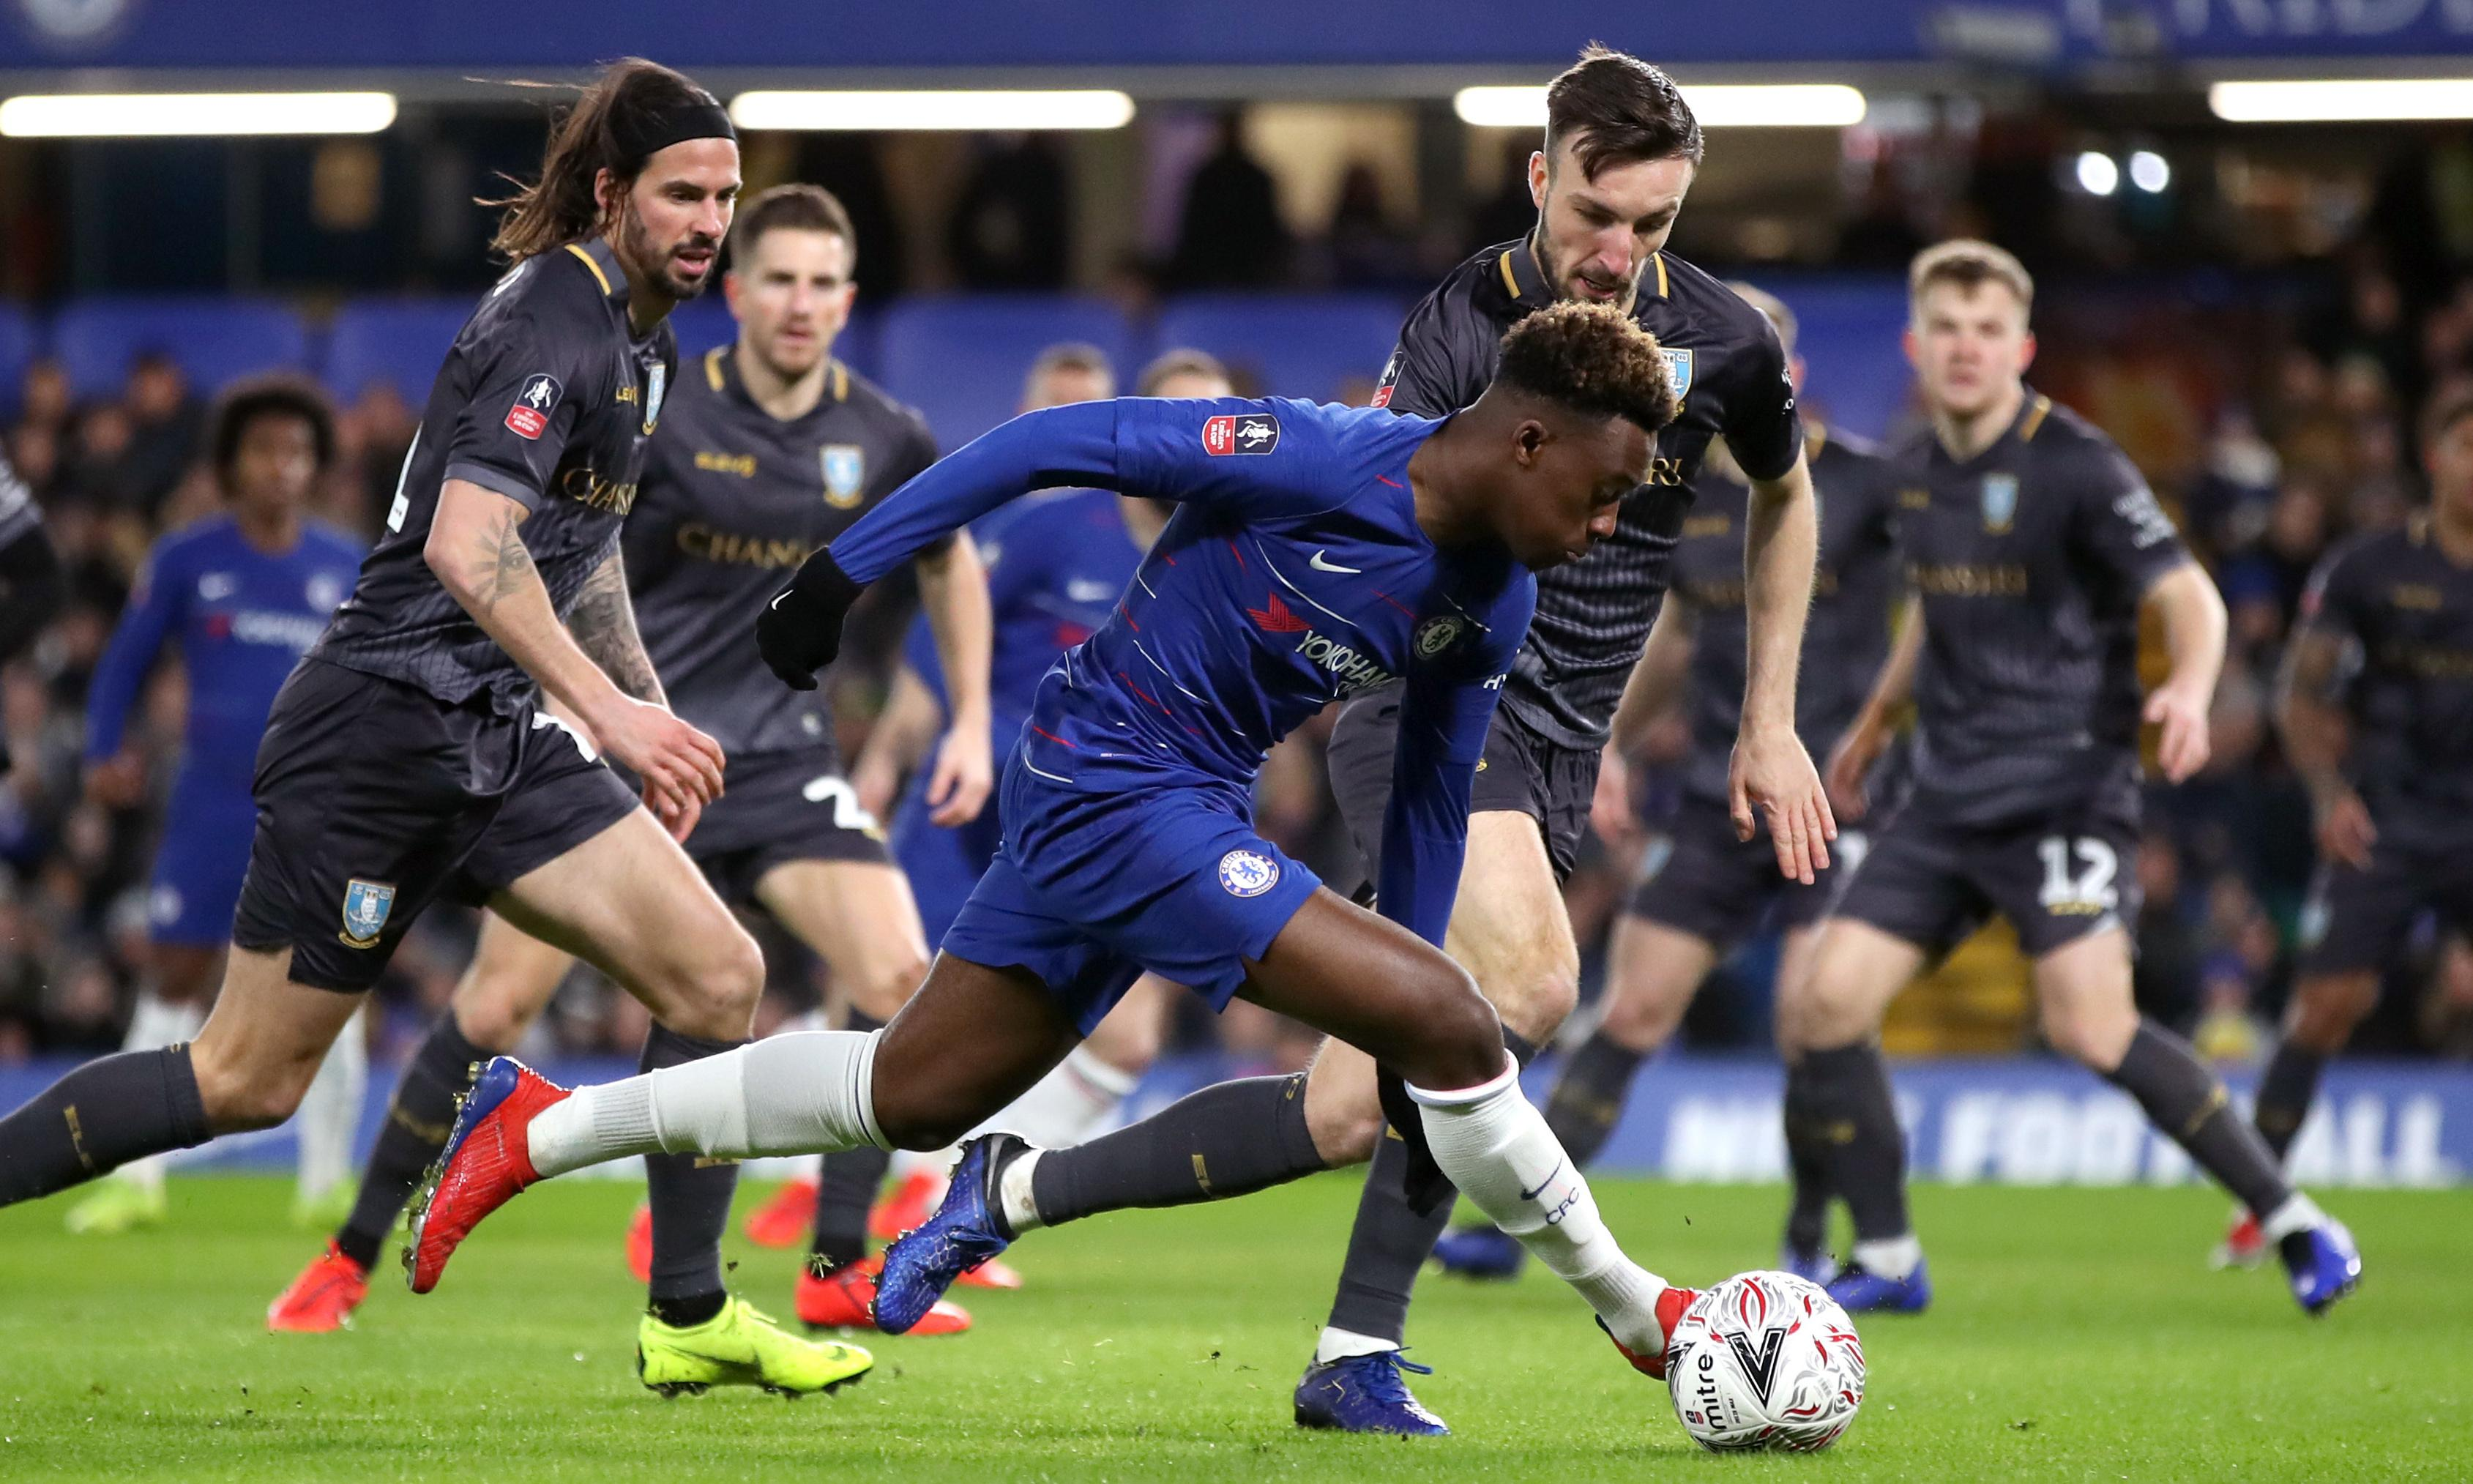 Chelsea's Callum Hudson-Odoi told to stay patient despite lack of game-time